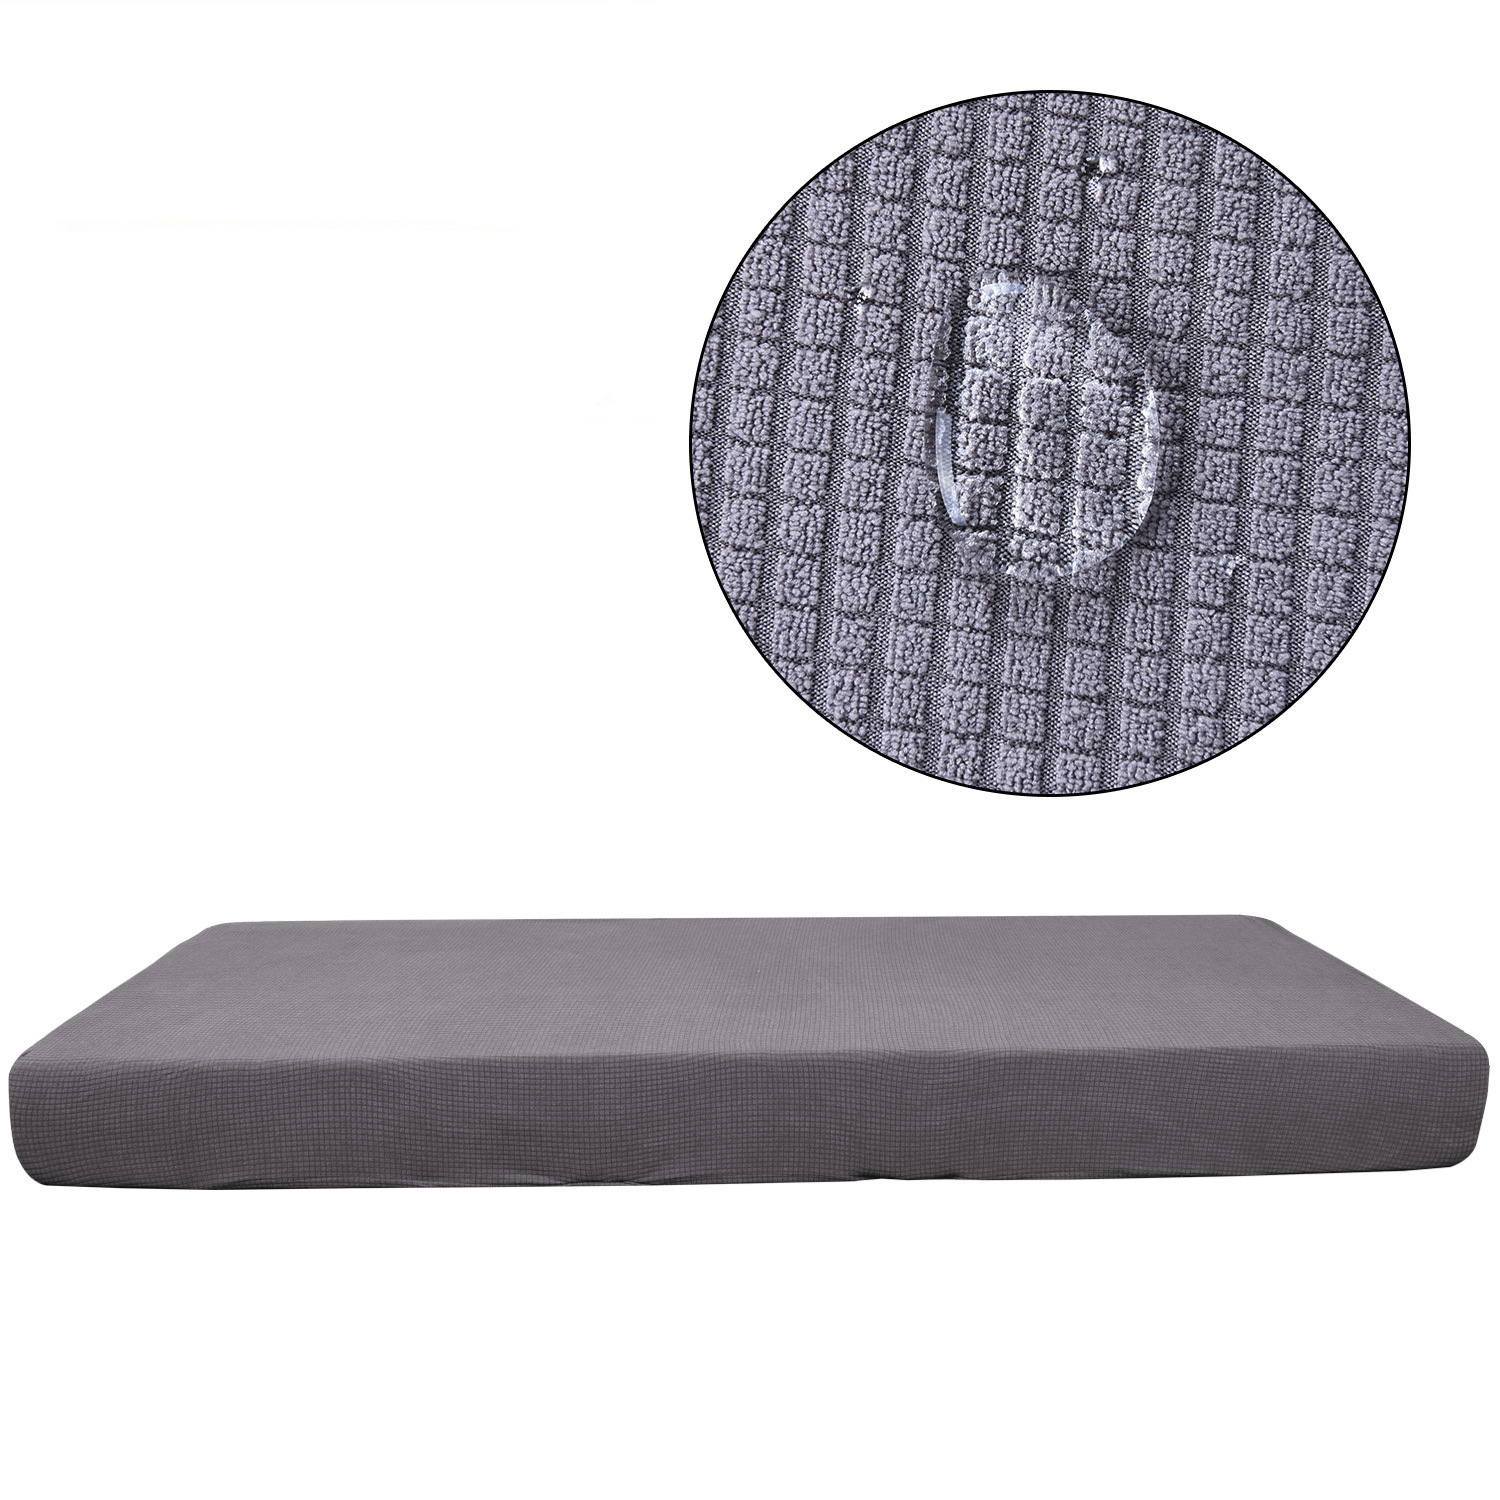 1 4 Seats Waterproof Stretchy Sofa Seat Cushion Cover